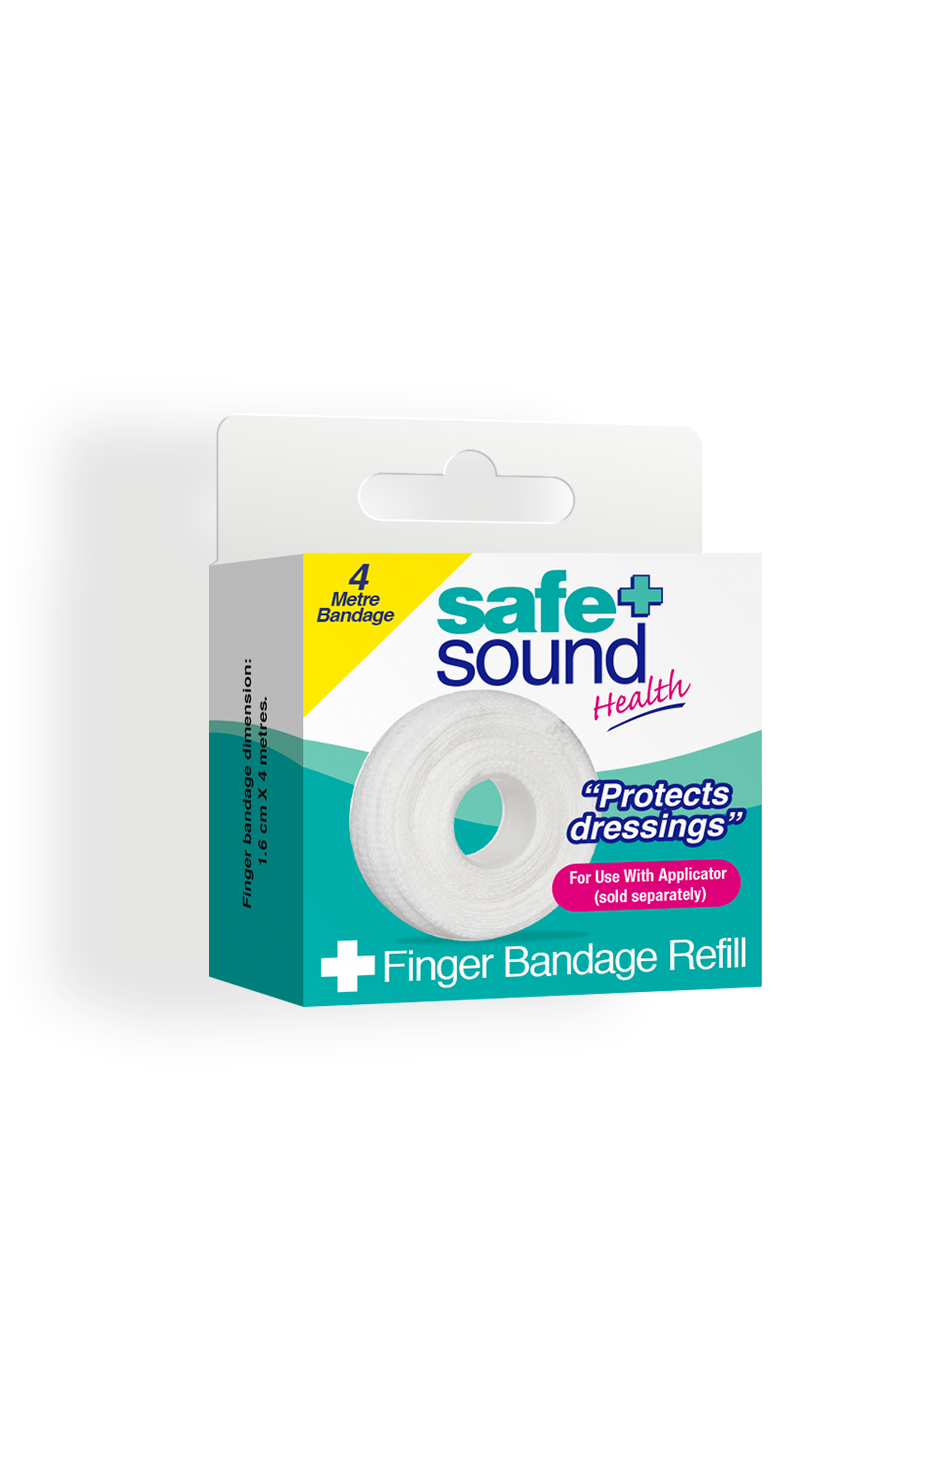 Safe and Sound Health Finger Bandage 4M